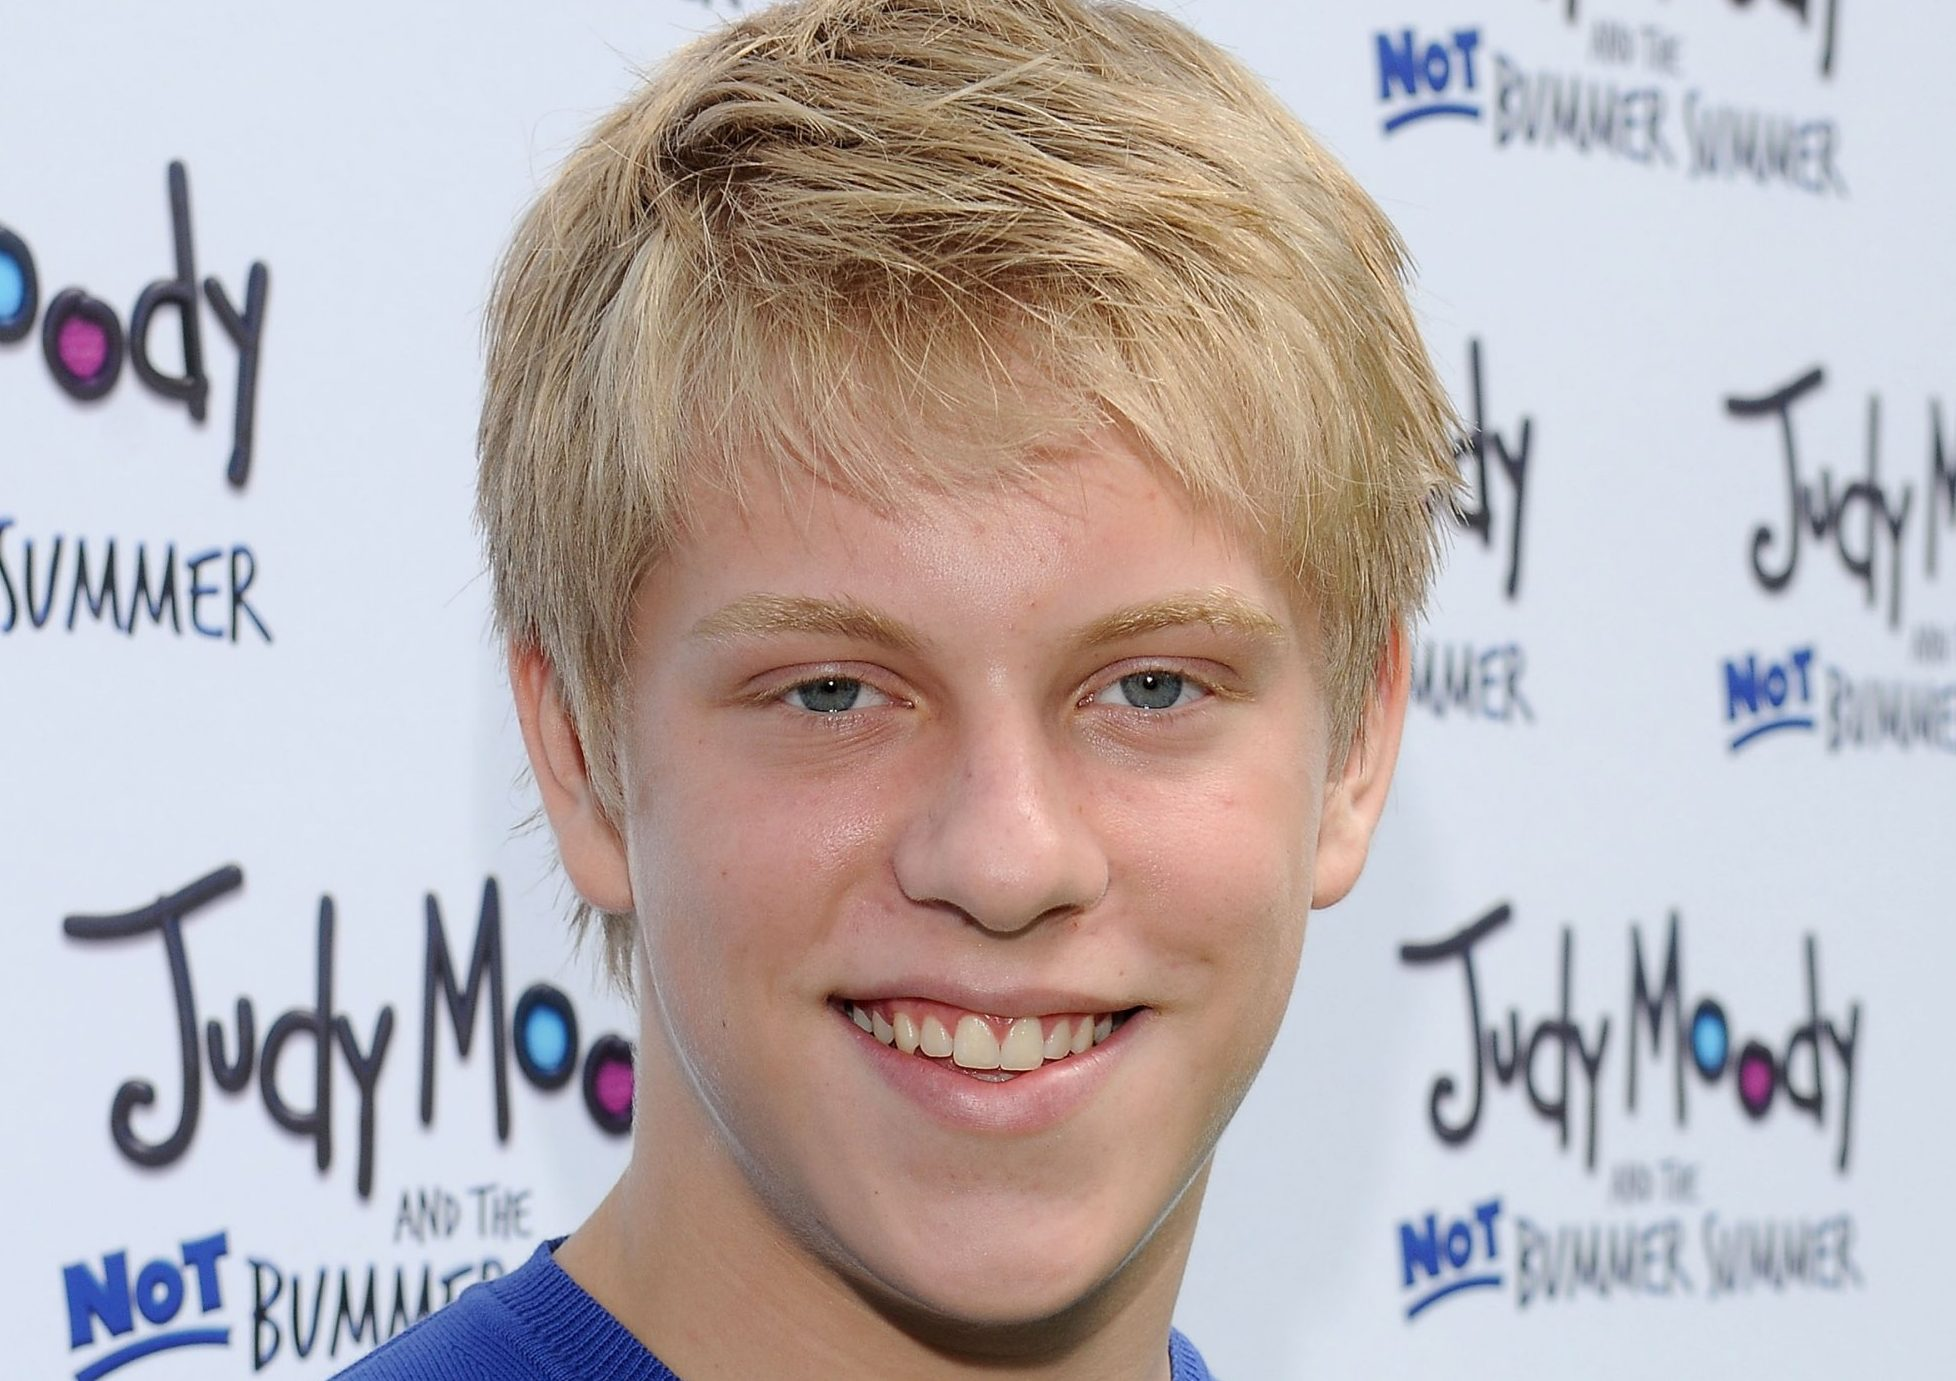 "Actor Jackson Odell attends the Los Angeles premiere of ""Judy Moody And The Not Bummer Summer"" at ArcLight Hollywood on June 4, 2011 in Hollywood, California. (Photo by Mark Sullivan/WireImage)"